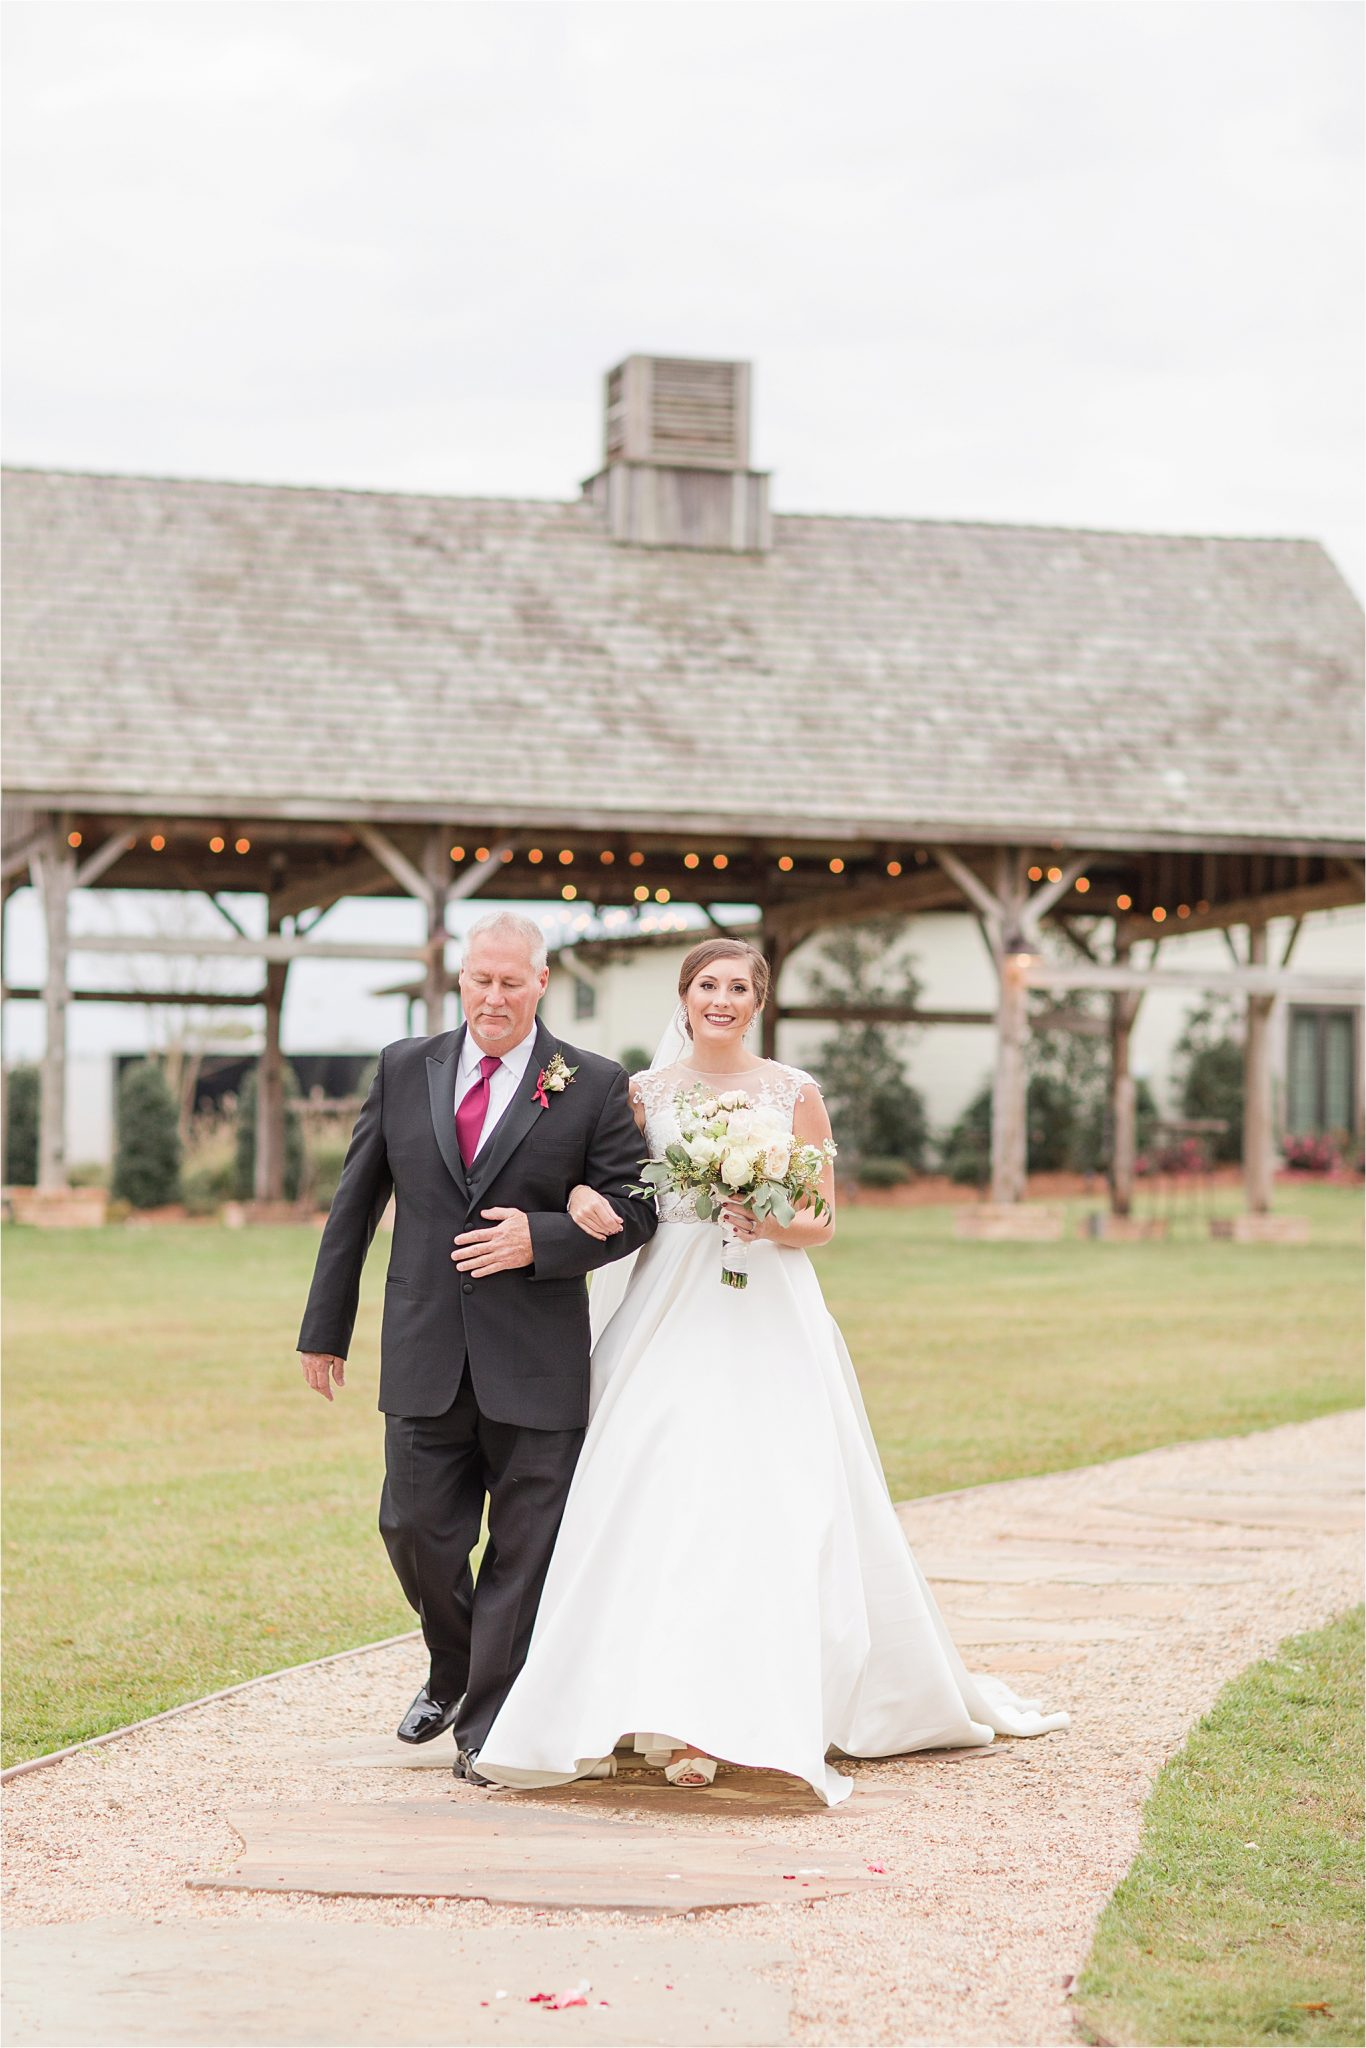 The Barn at Bridlewood Wedding in Hattiesburg, Mississippi